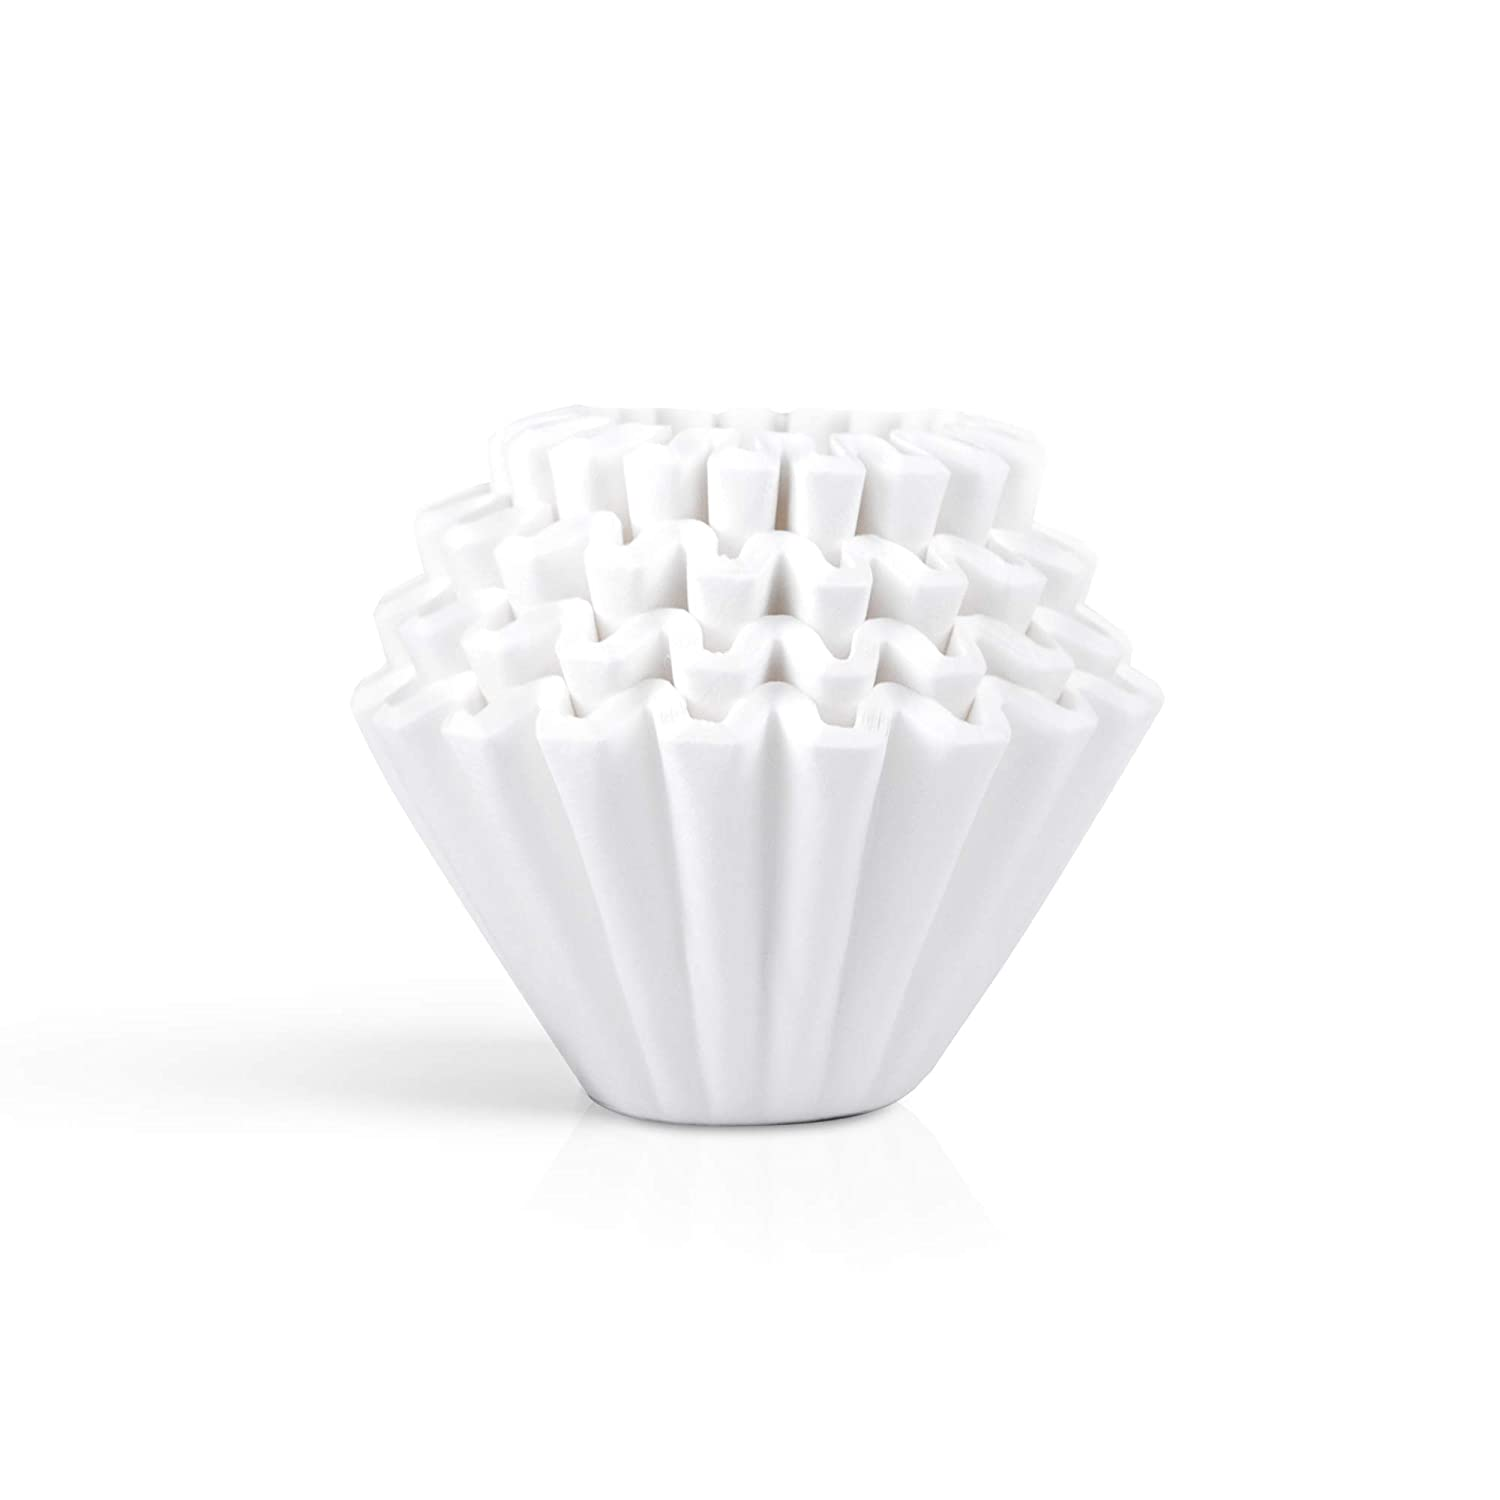 Kalita 22212 KWF-185 Wave 185 (100P) Paper Filter, Size, White